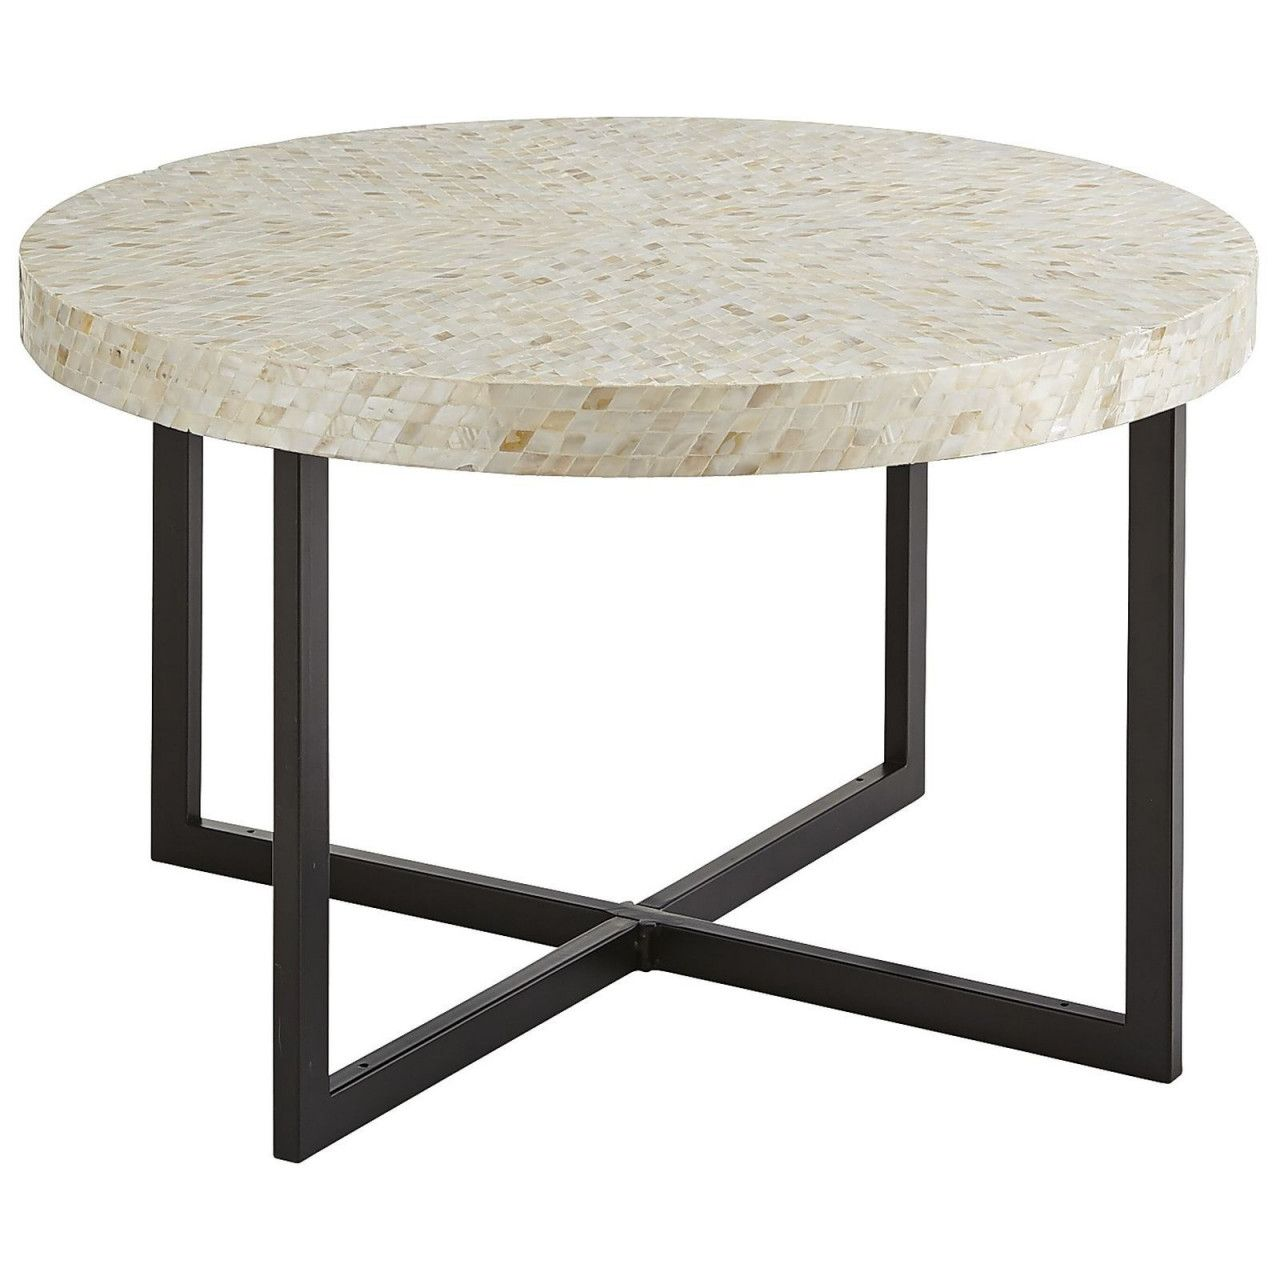 50 Inspirational Pier 1 Coffee Table 2018 Coffee Table White Round Coffee Table Round Coffee Table [ 1280 x 1280 Pixel ]